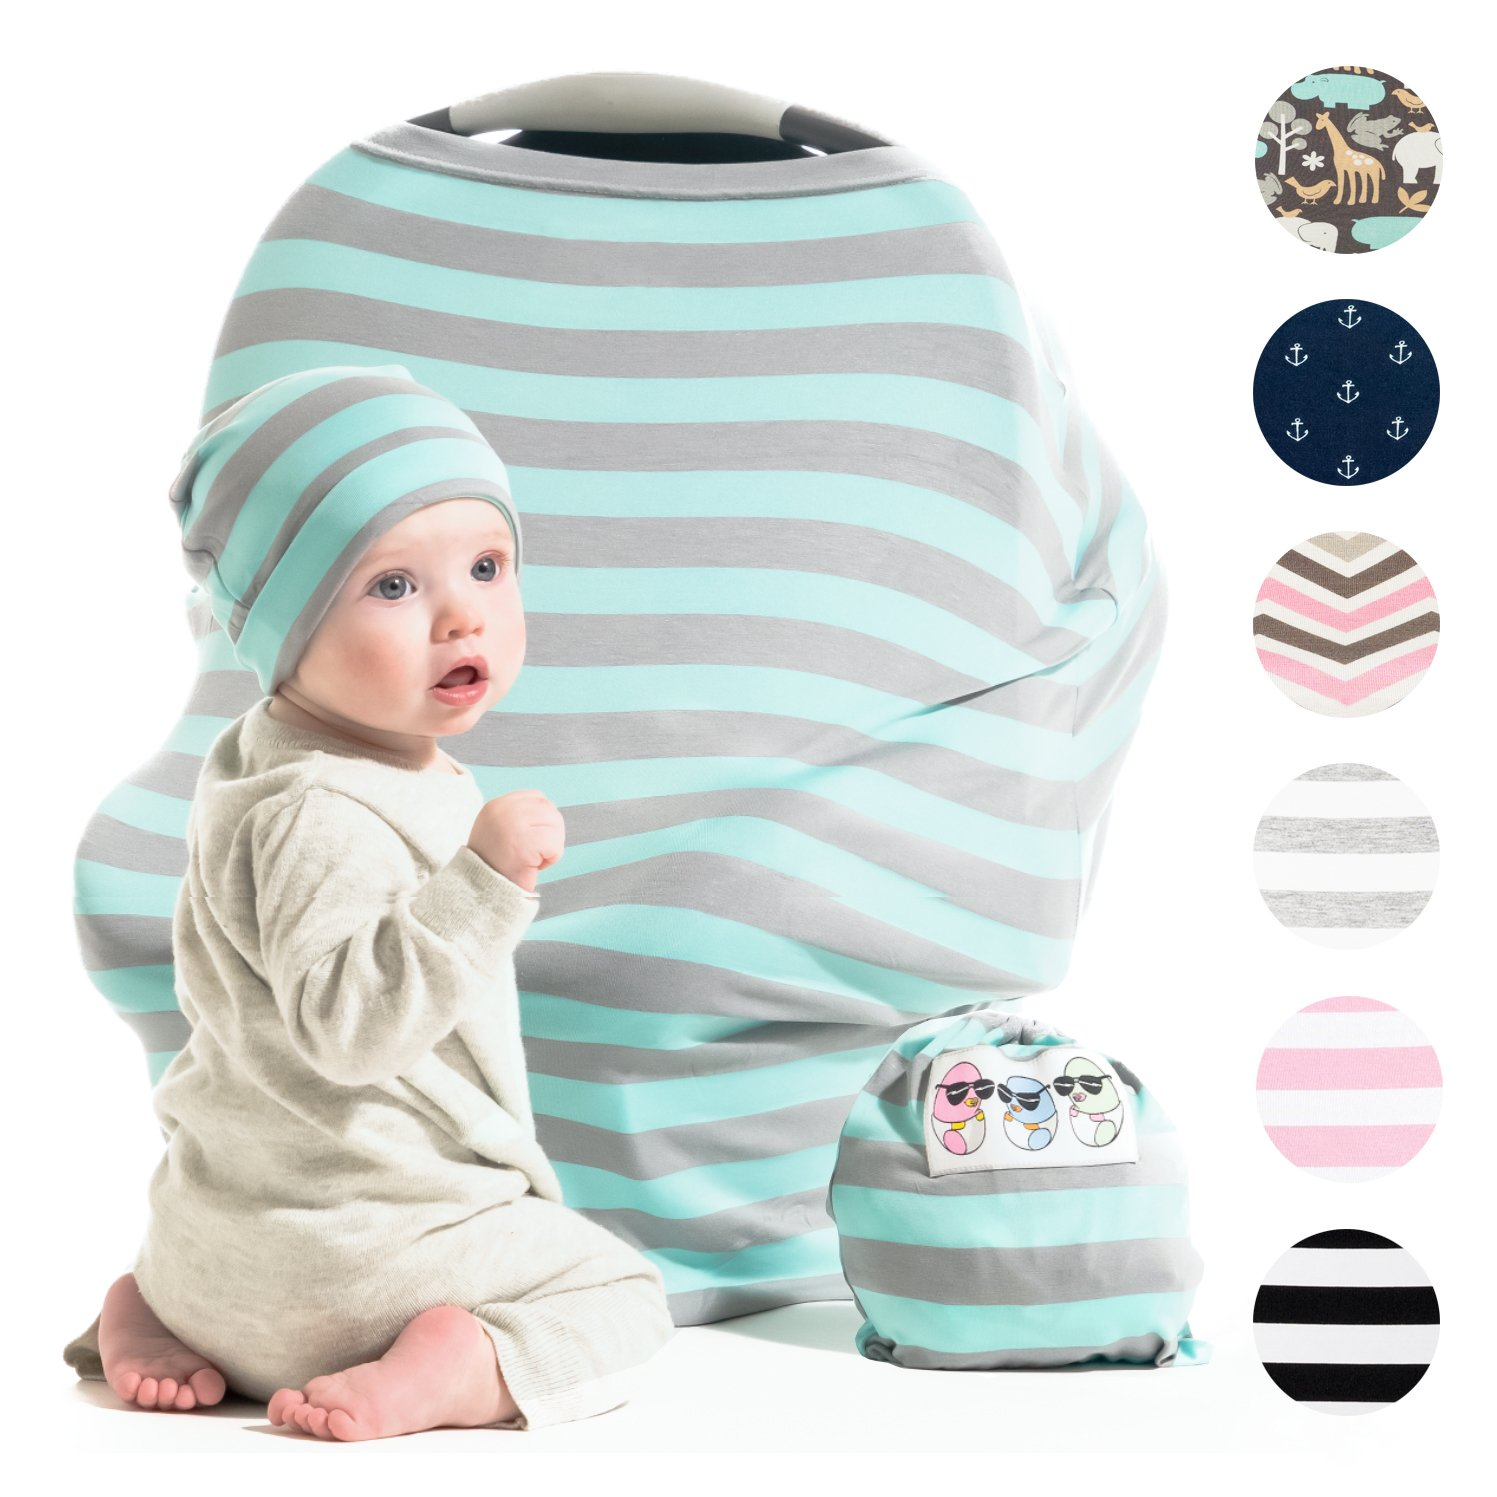 Cool Beans Baby Car Seat Canopy and Nursing Cover | Multiuse - Soft and stretchy fabric easily covers High Chairs, Shopping Carts, Car Seats | BONUS Infant Baby Beanie and Bag (Black and White)